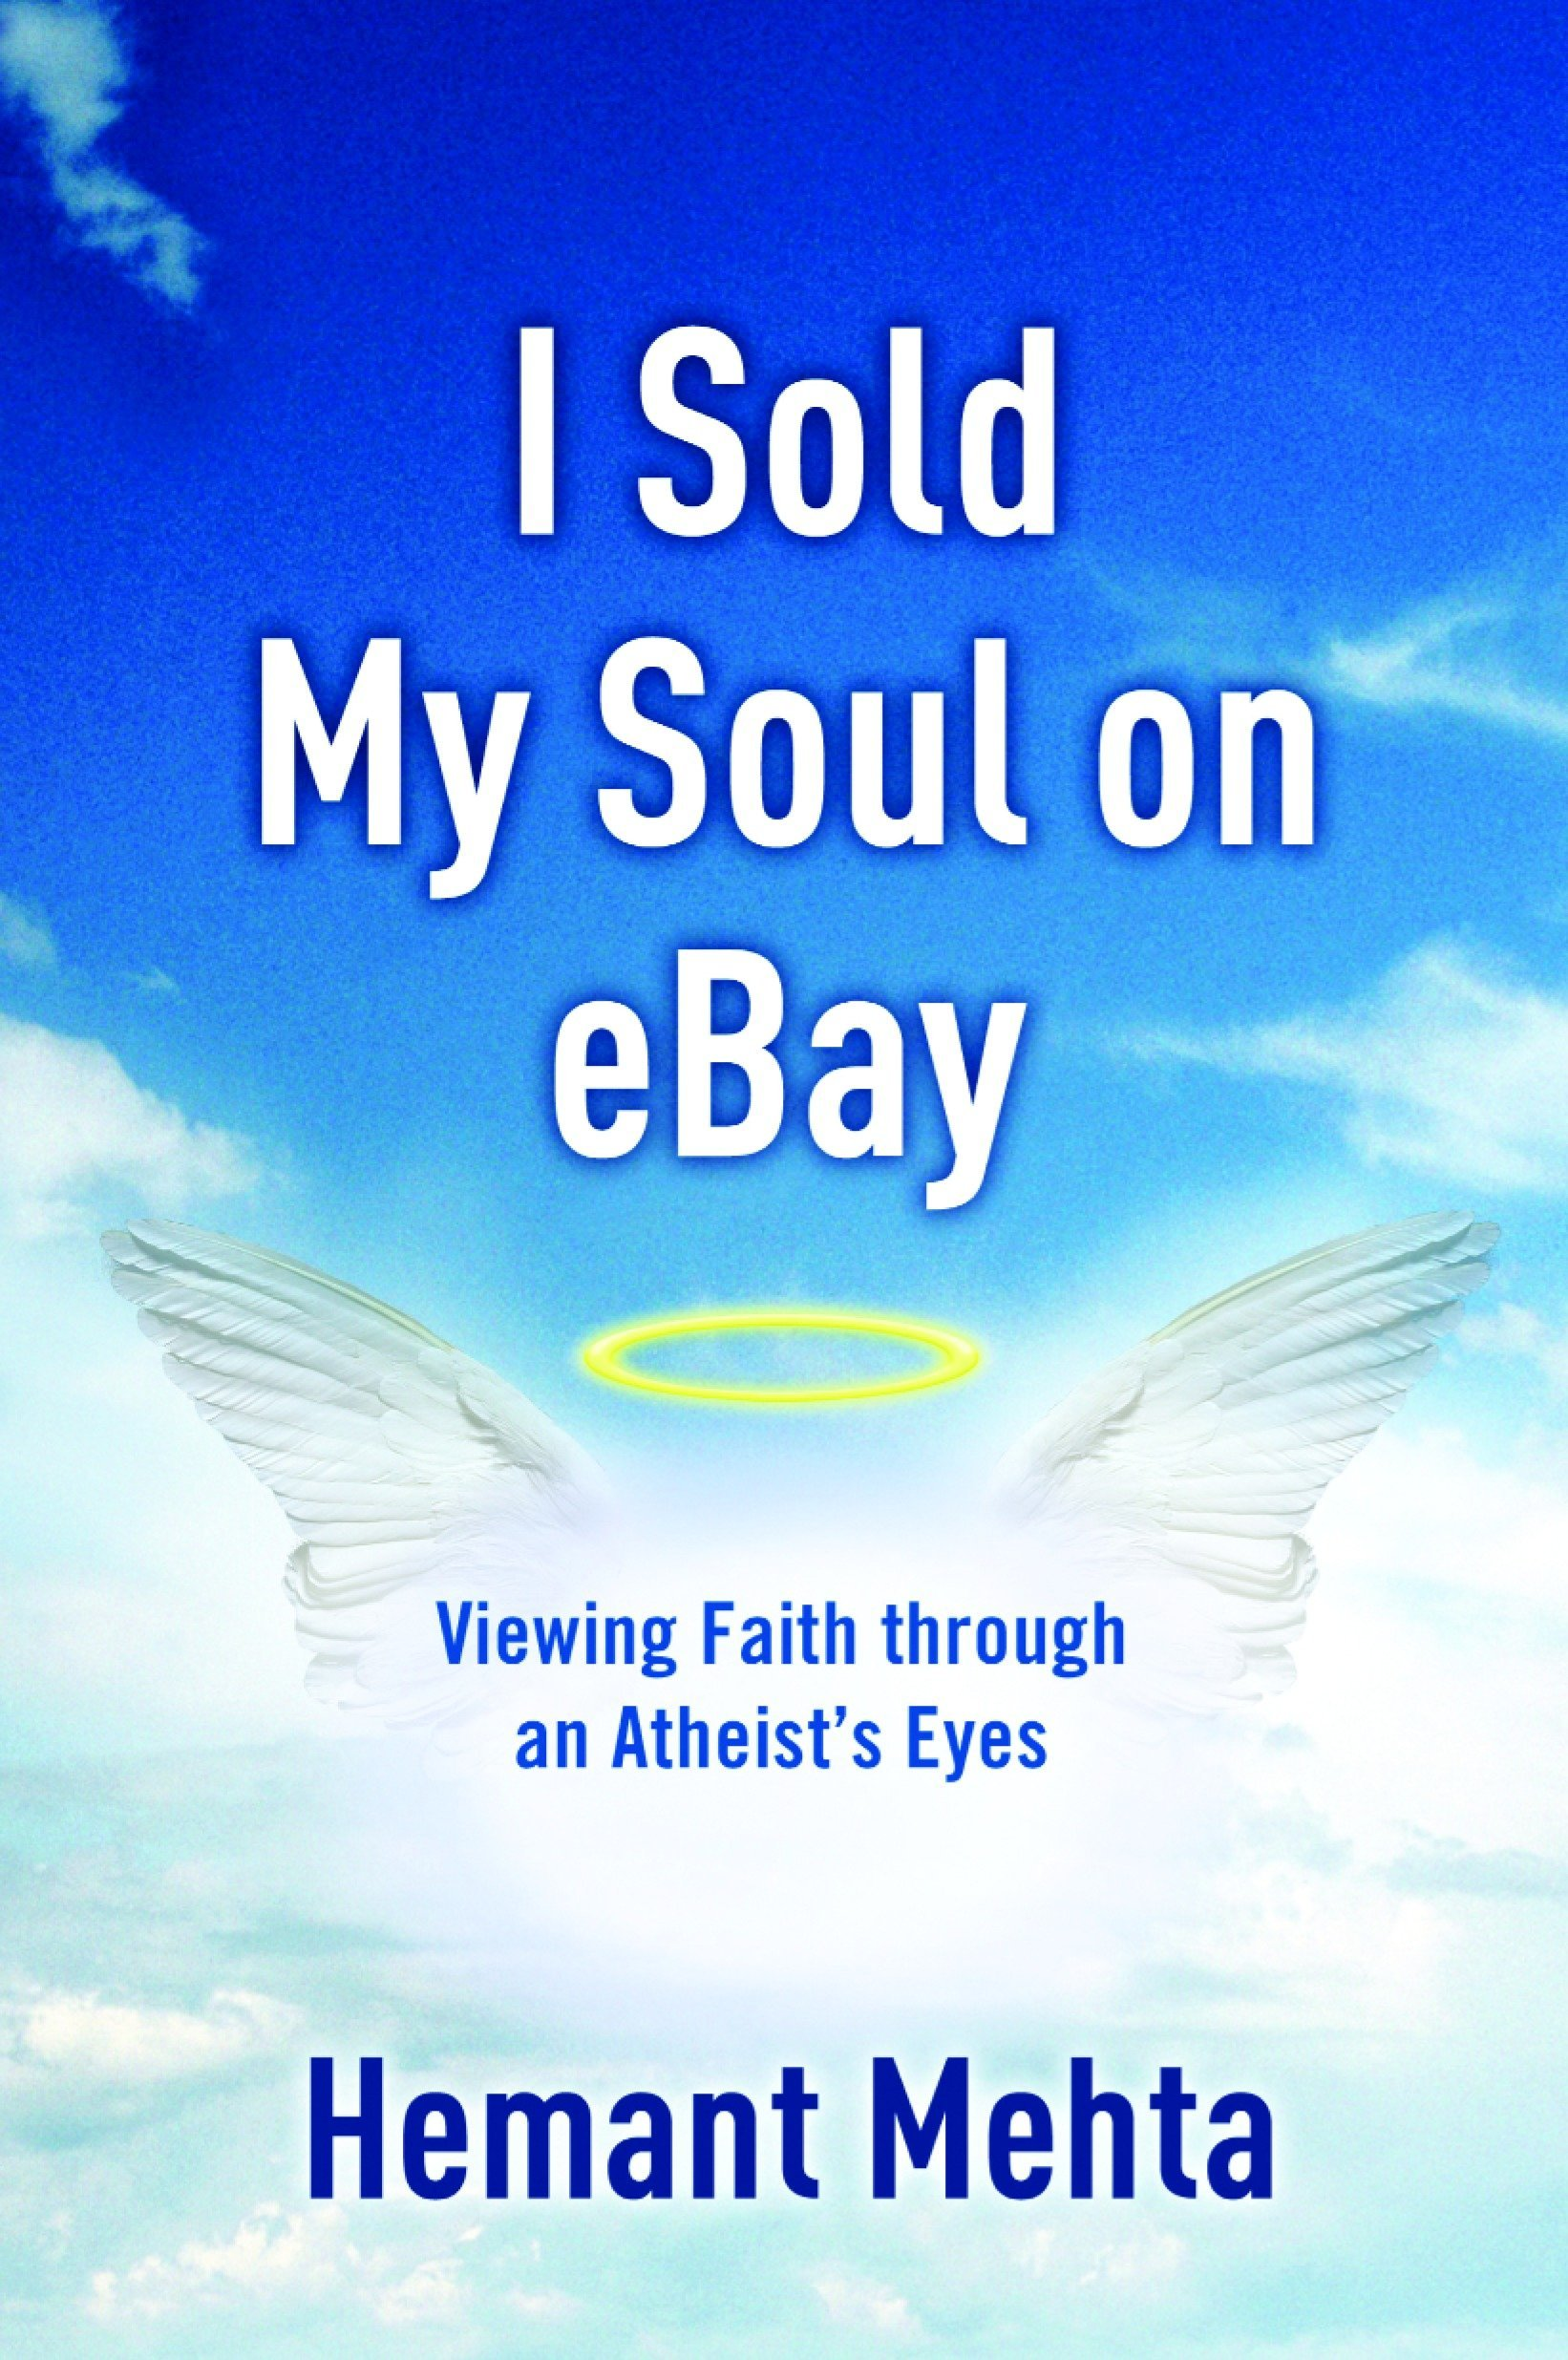 I Sold My Soul on eBay: Viewing Faith through an Atheist's